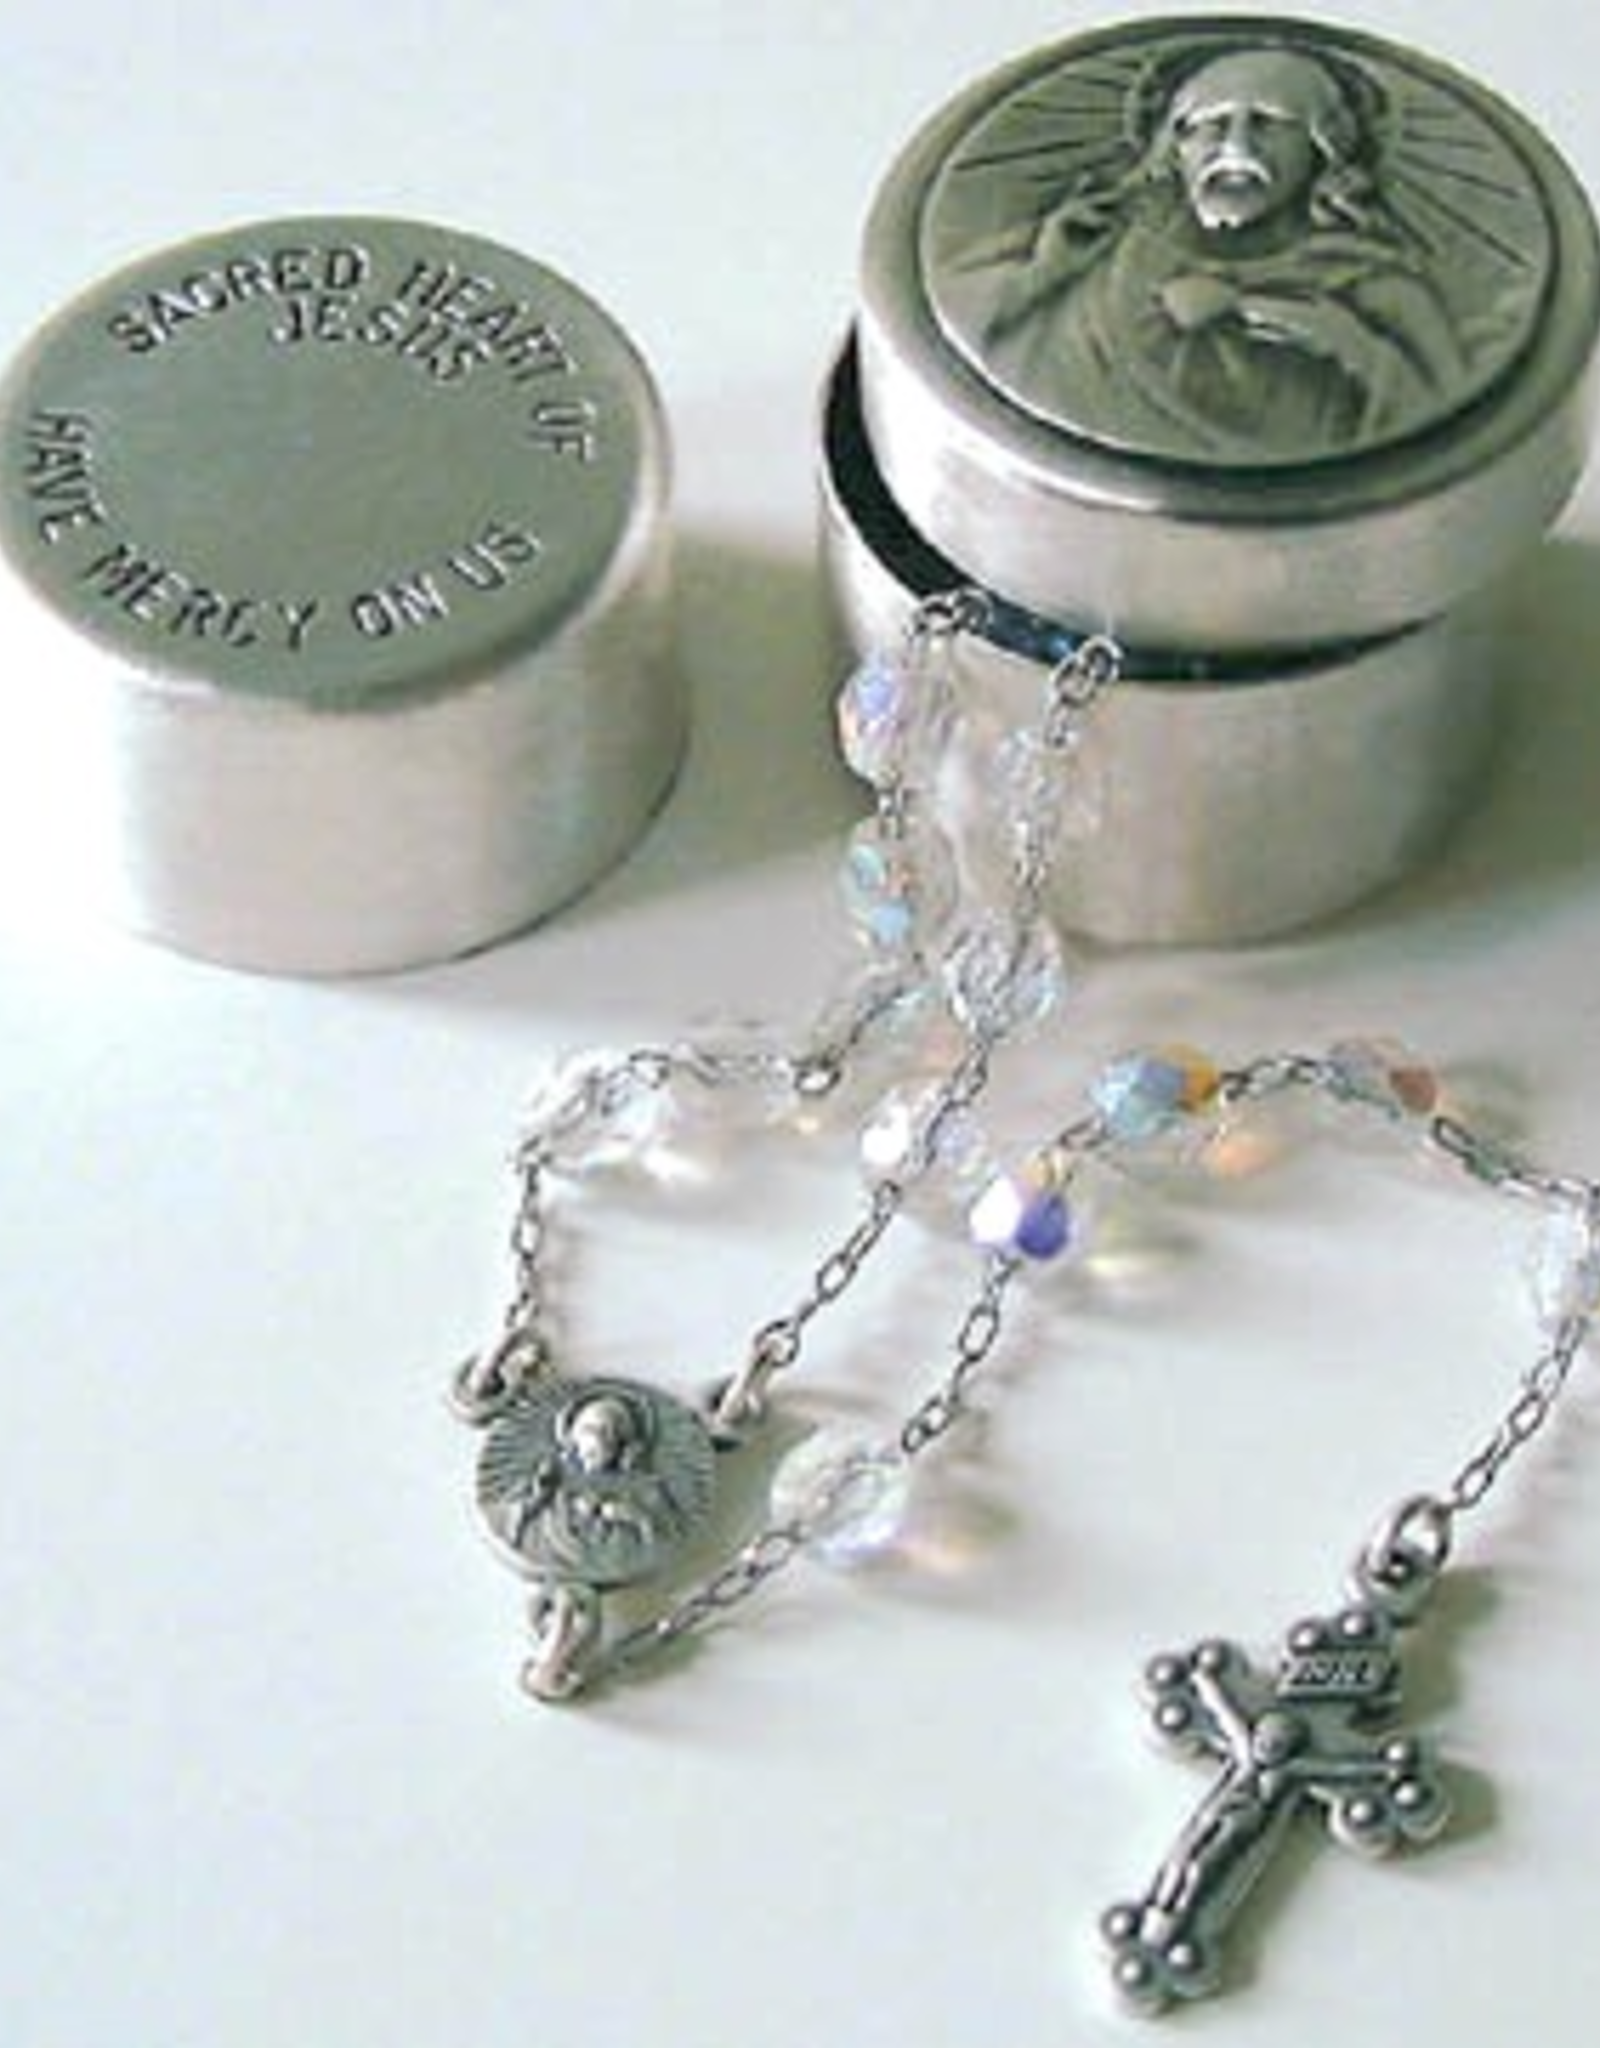 Illumigifts St. Therese Rosary Box